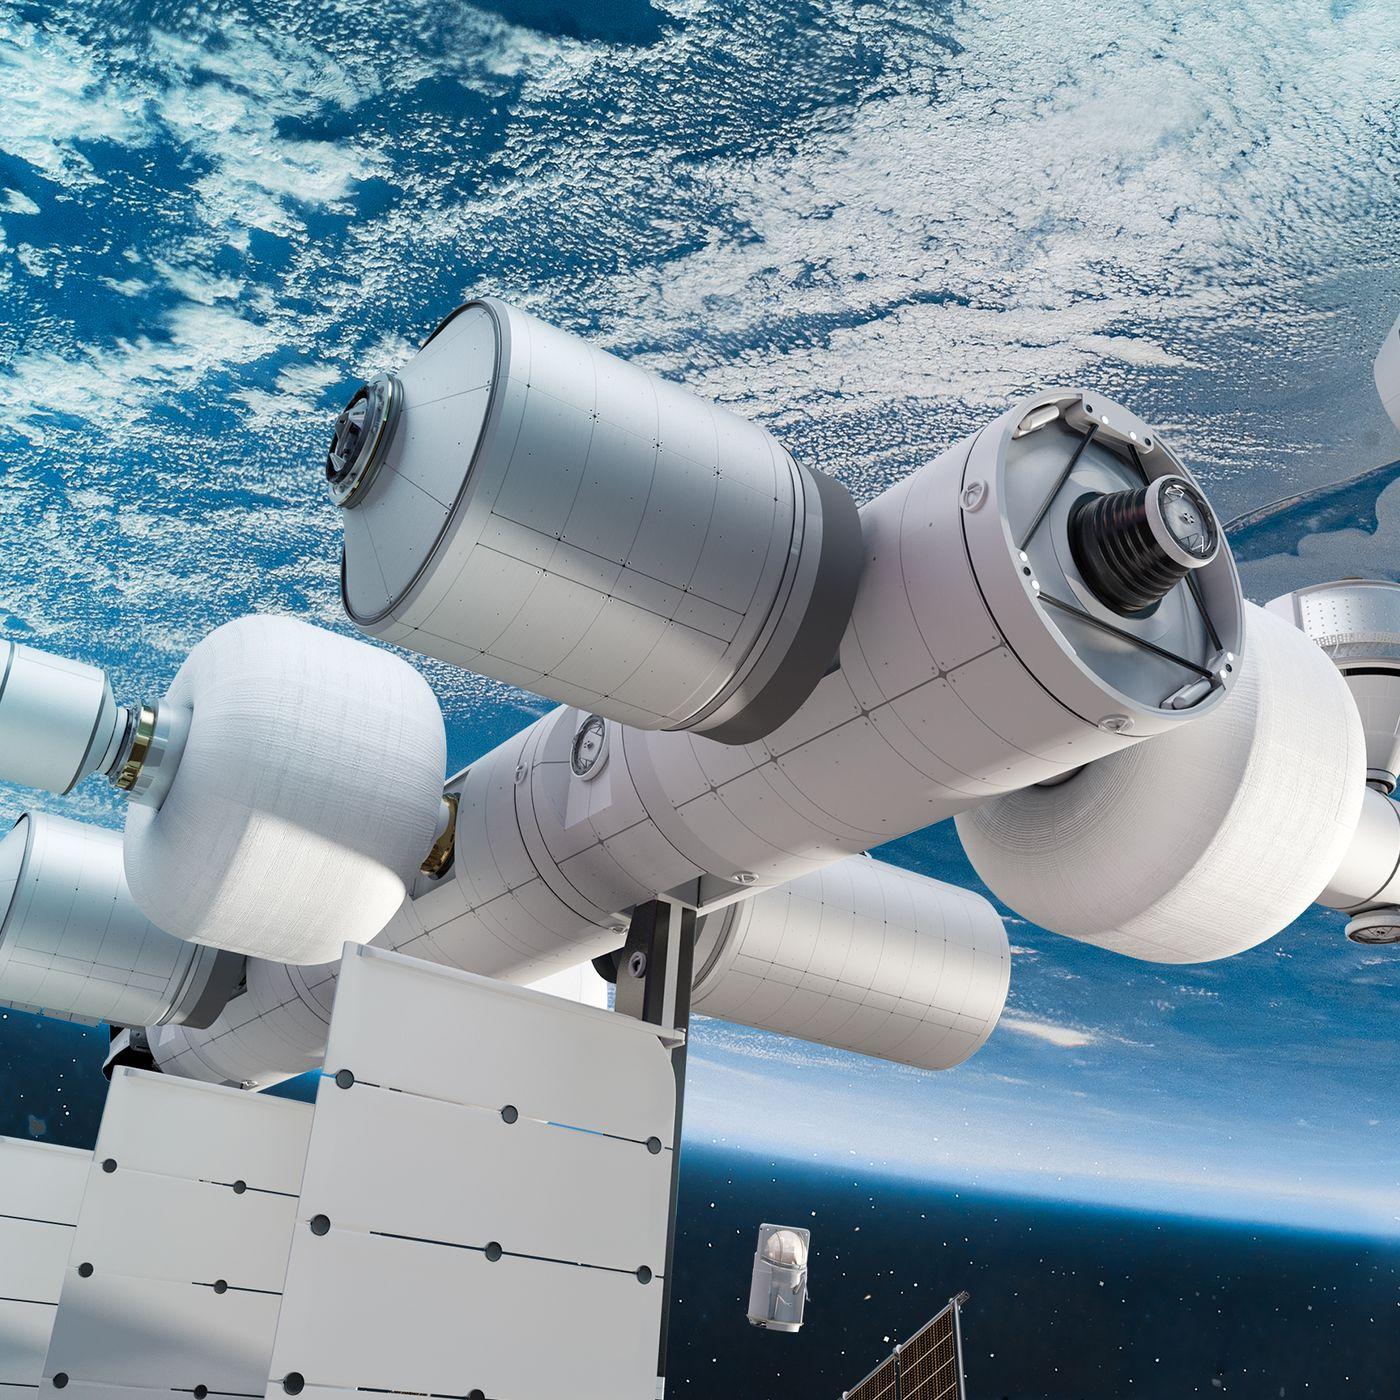 theverge.com - Loren Grush - Blue Origin unveils plans for future commercial space station called Orbital Reef